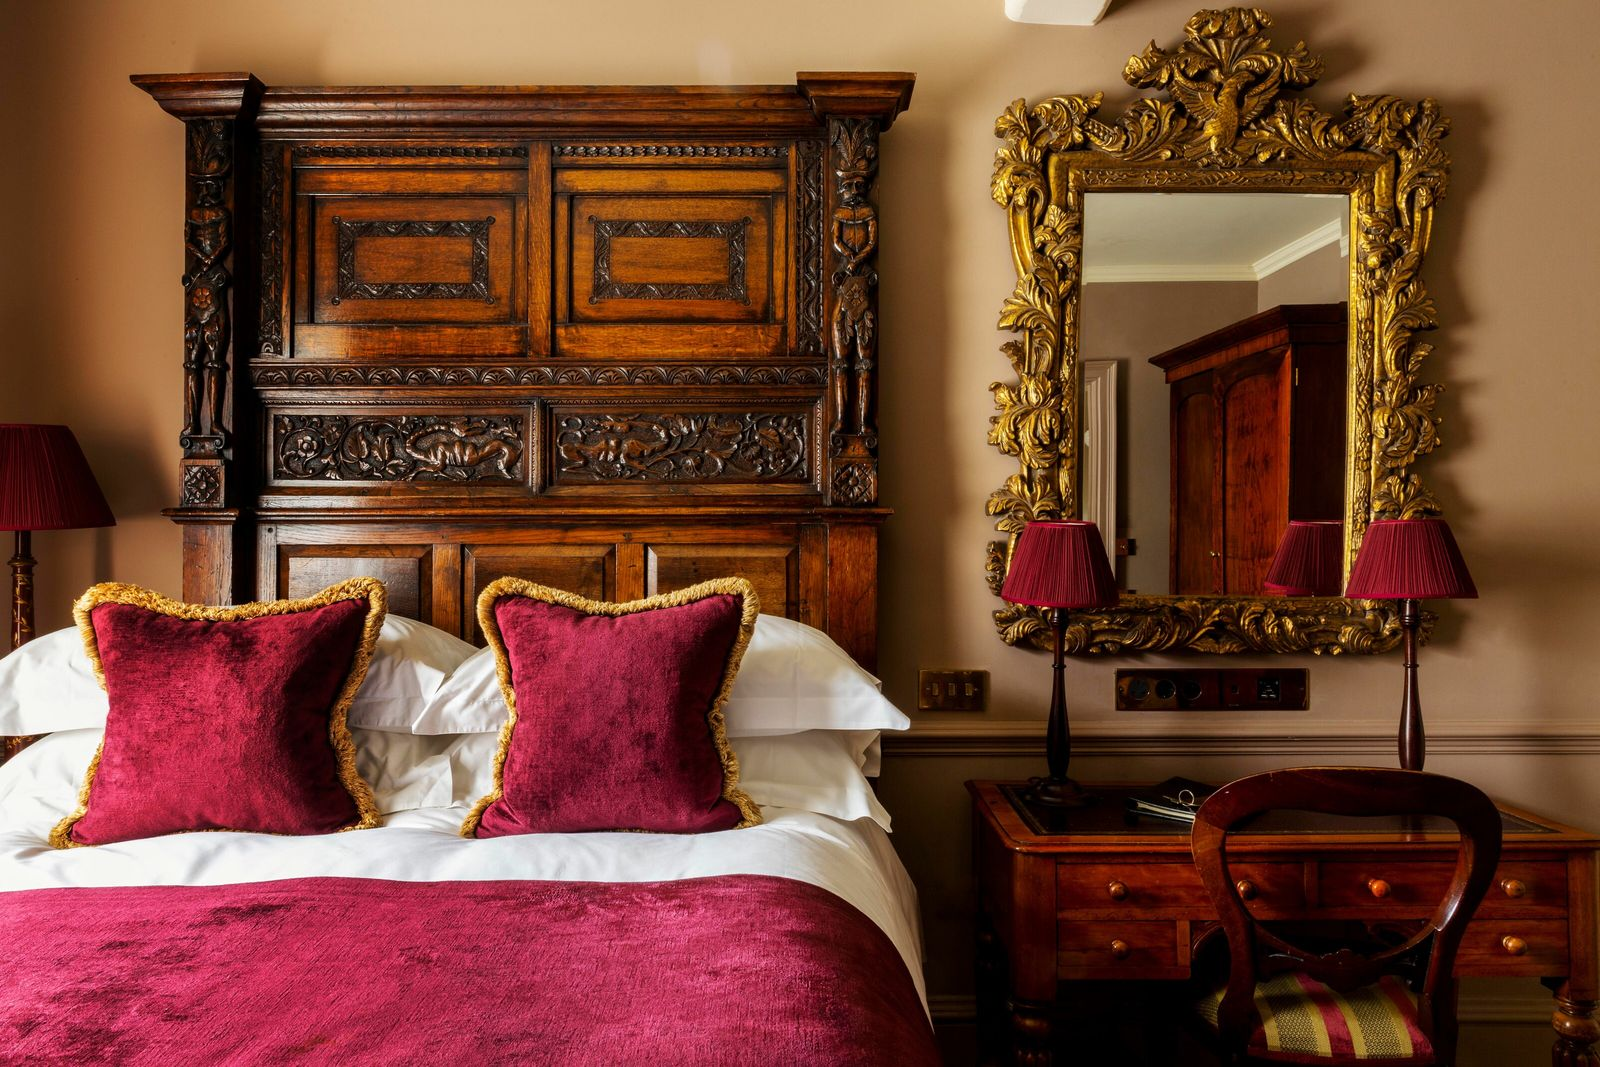 Lavish, decadent interiors set the tone at Batty Langley's, named after the 18th-century writer and eccentric.